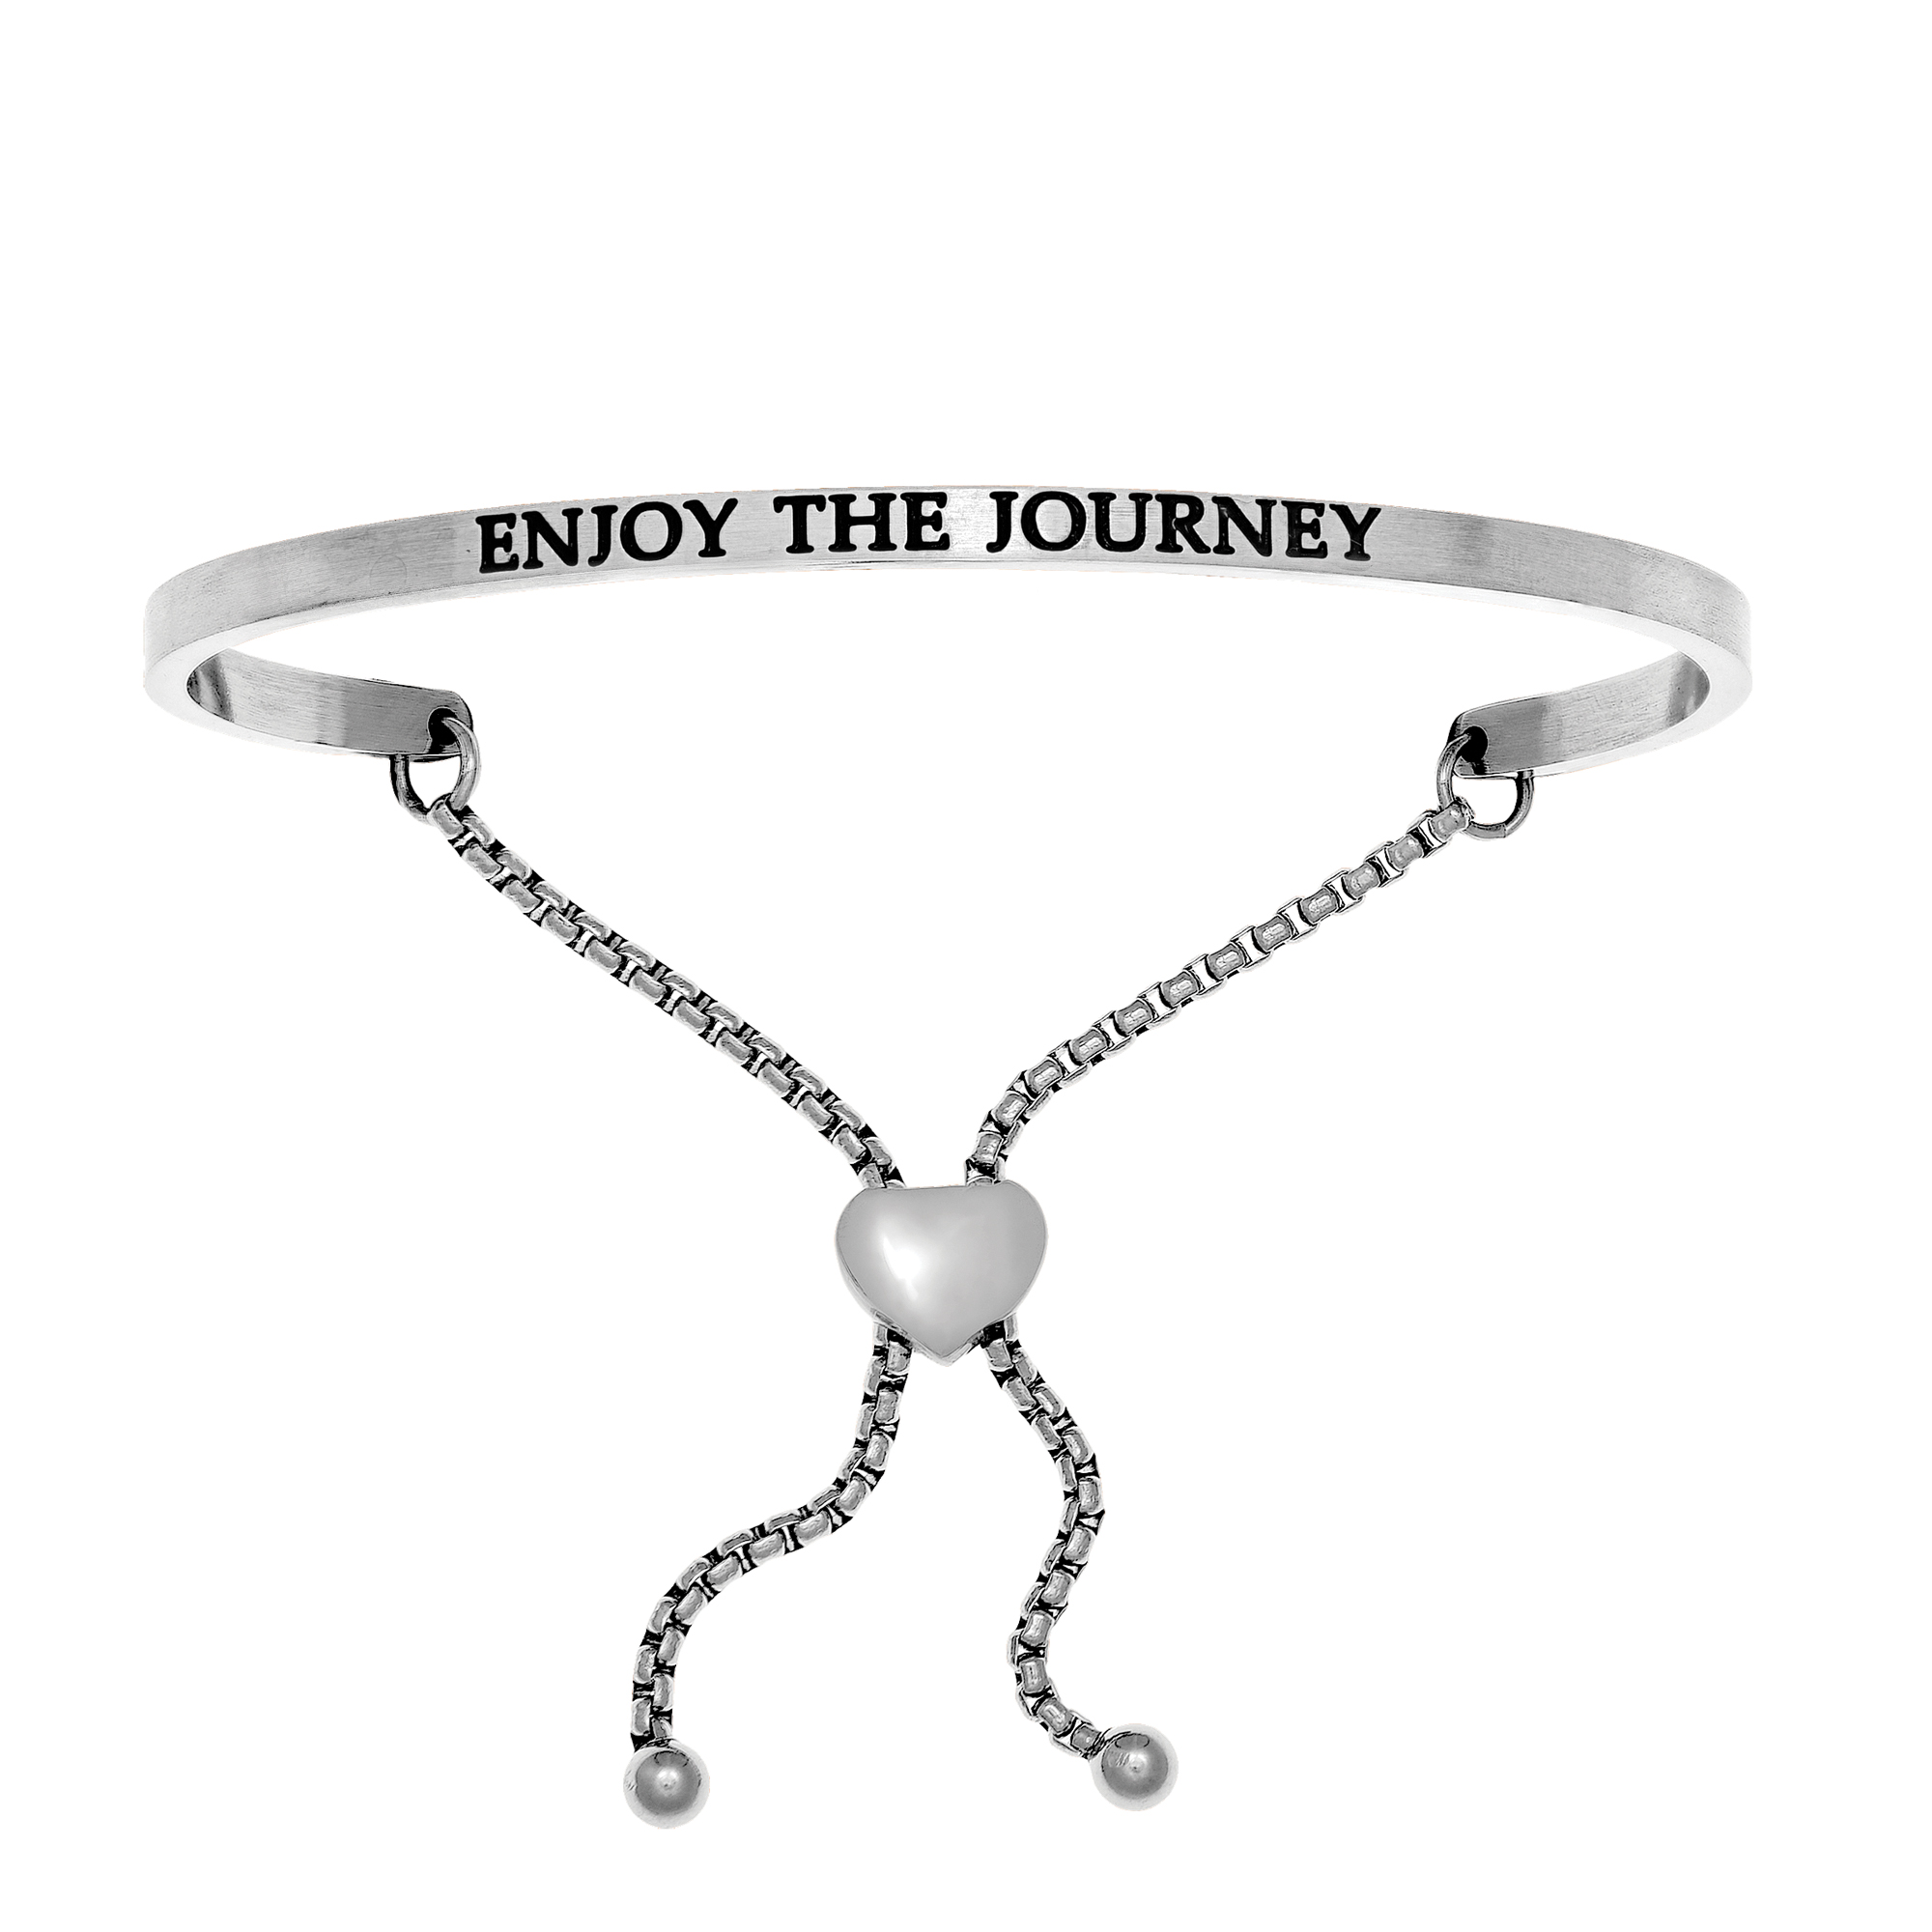 Intuitions Stainless Steel ENJOY THE JOURNEY Diamond Accent Adjustable Bracelet Each of these bracelets carries a personal message of inspiration, spirituality or just plain fun. Meant to be worn alone or stacked together for a smart, contemporary look, they're a great self-purchase or as a gift for family or friends. Intuitions are made of stainless steel and come in two styles standard cuff or friendship and fit practically any wrist. Intuitions Jewelry makes the difference in your daily life by designing and creating bracelets and bangles with motivational quotes to inspire you and your loved ones. Giving back $.25 of each bracelet to BABY2BABY